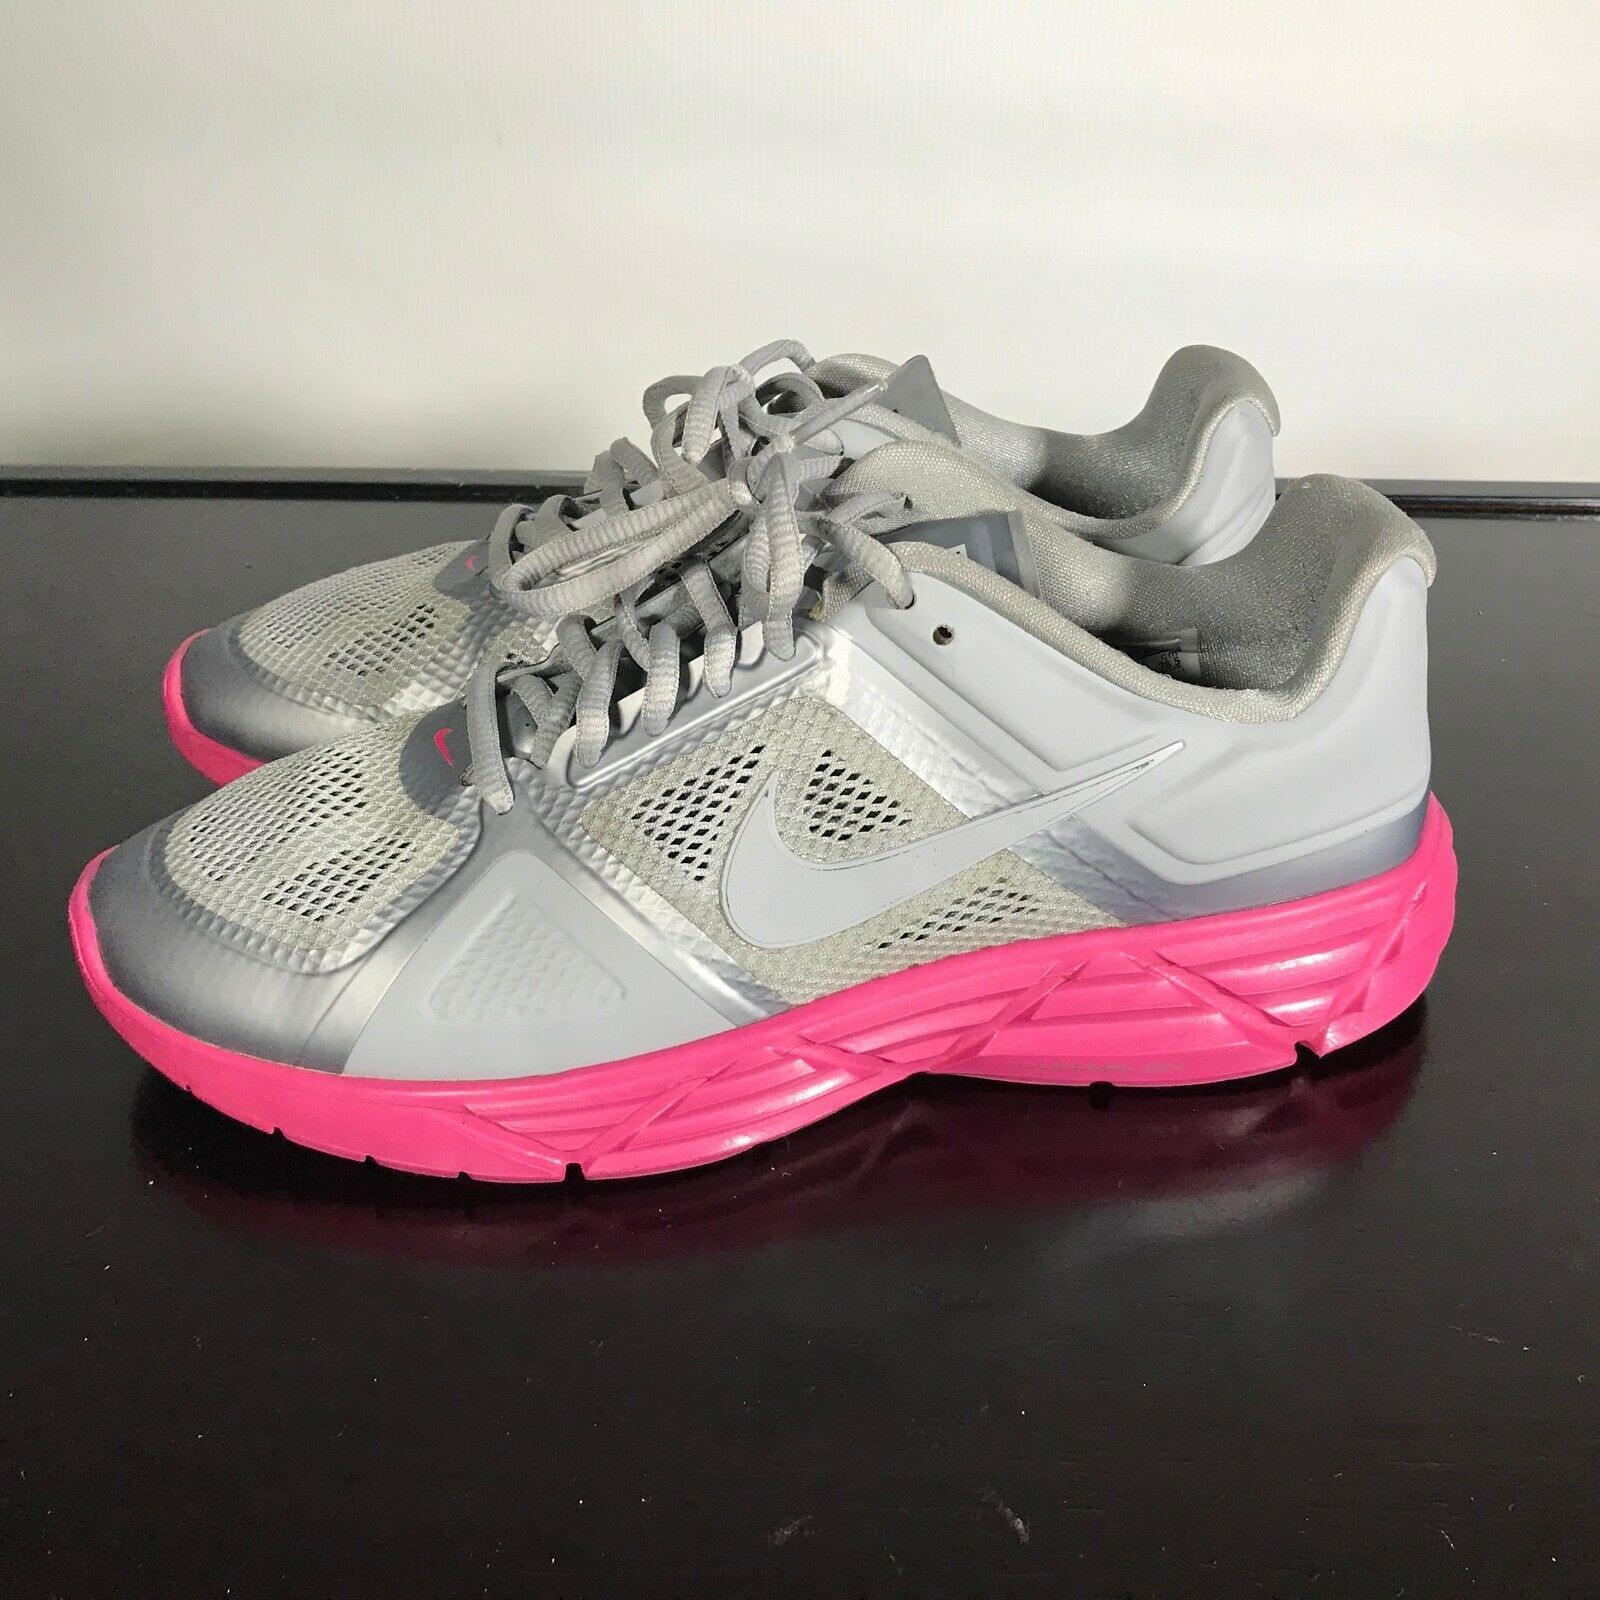 Nike Lunar Victory Training  Size 9.5, Women's Gym Shoes. Lunarlon. Gray. Nice!